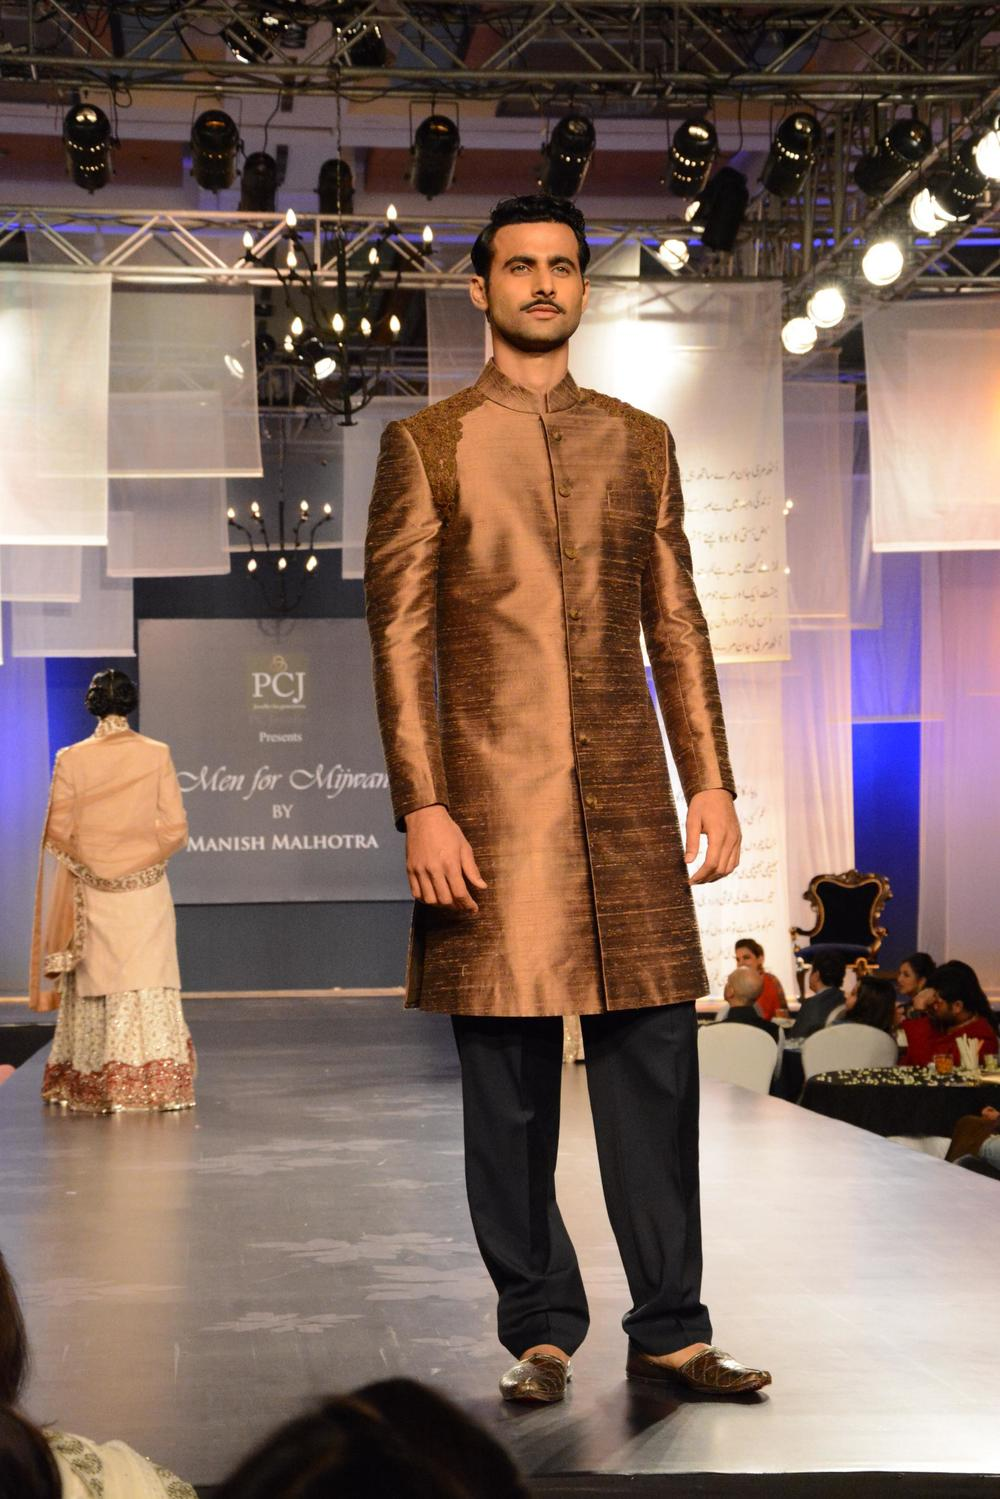 manish-malhotra-men-mijwan-19.JPG